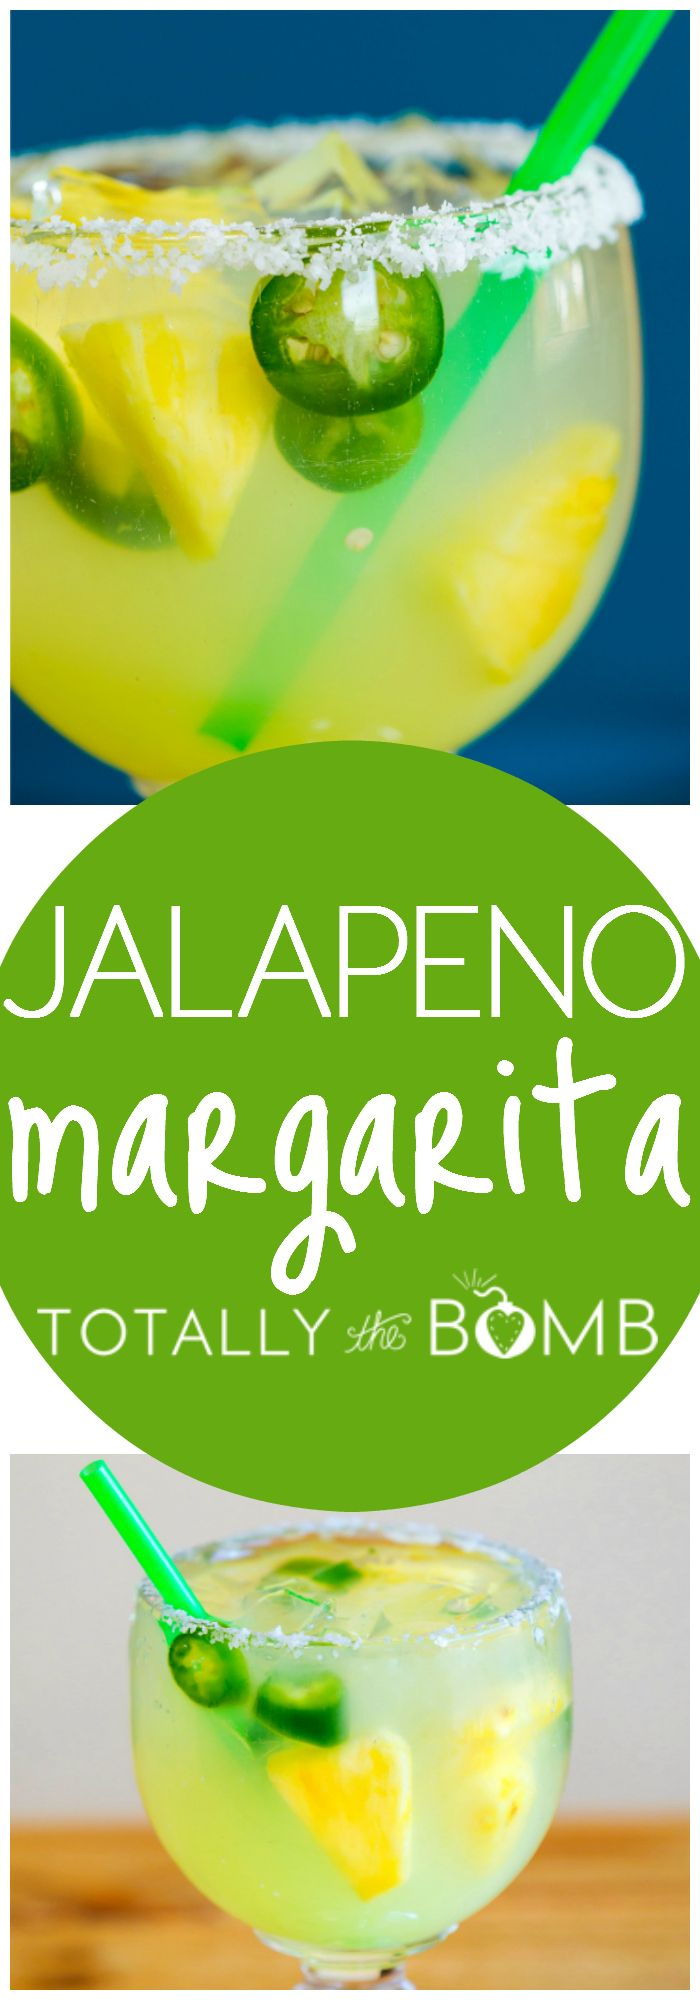 St. Patrick's Day, Texas Style – Jalapeno Margarita